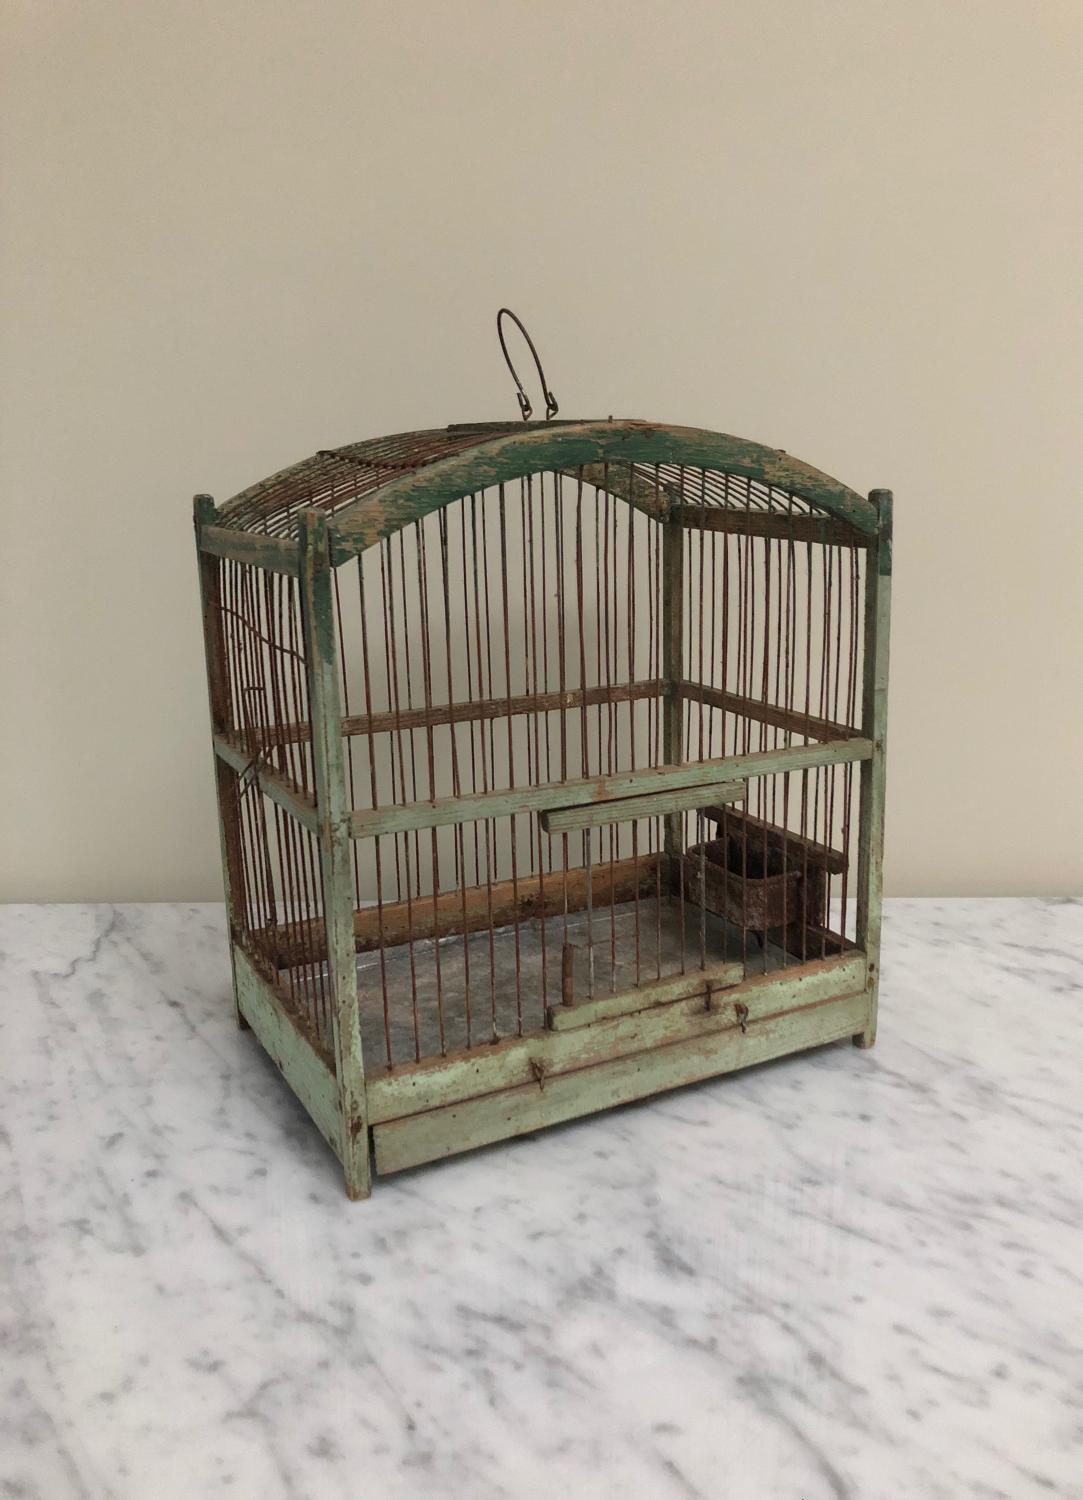 Early 20th Century Decorative Pine Bird Cage in Original Paint.